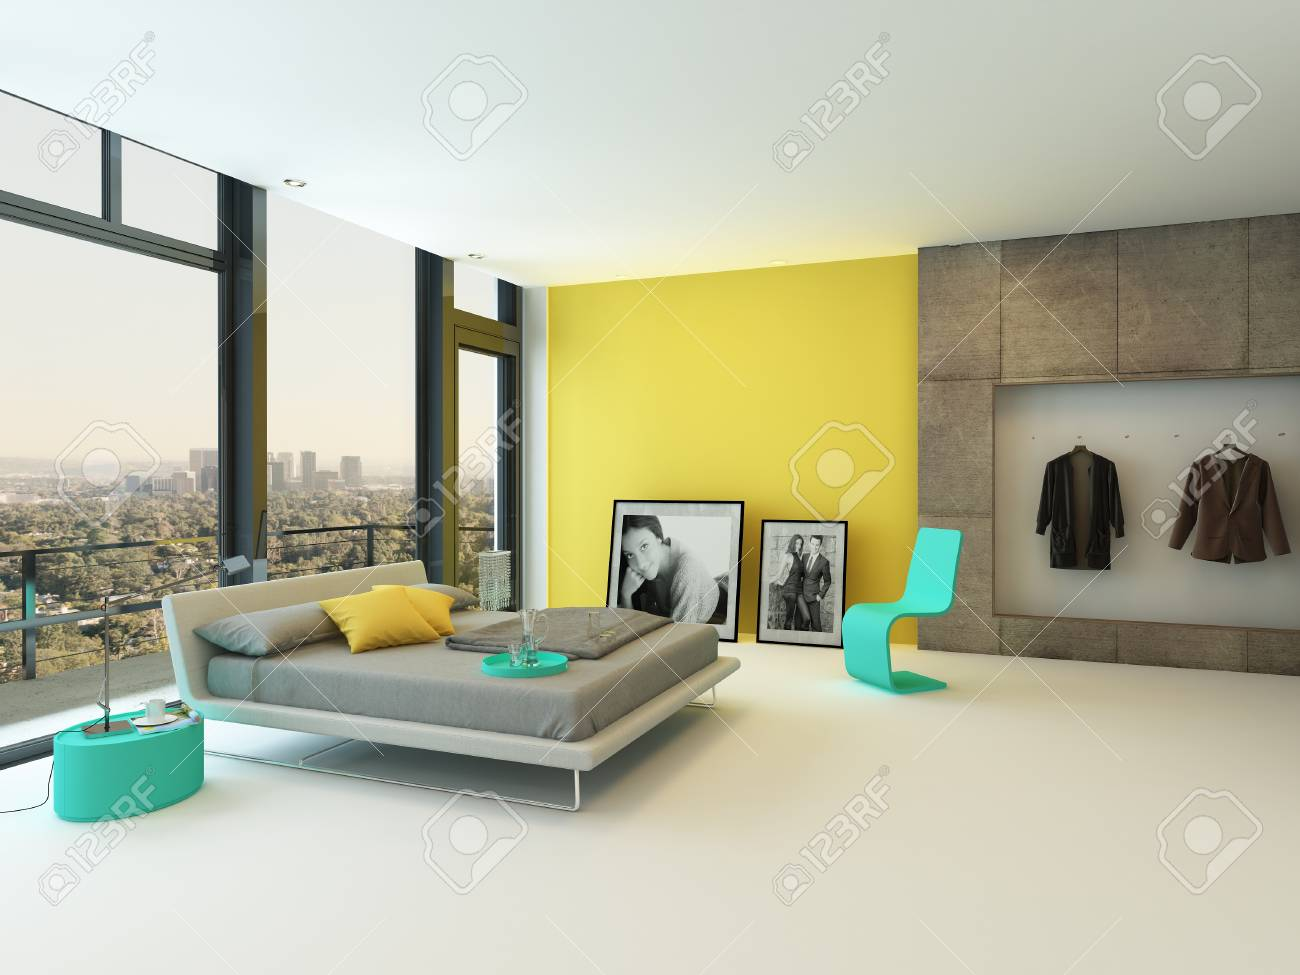 Spacious colorful bedroom interior with yellow wall accents,..